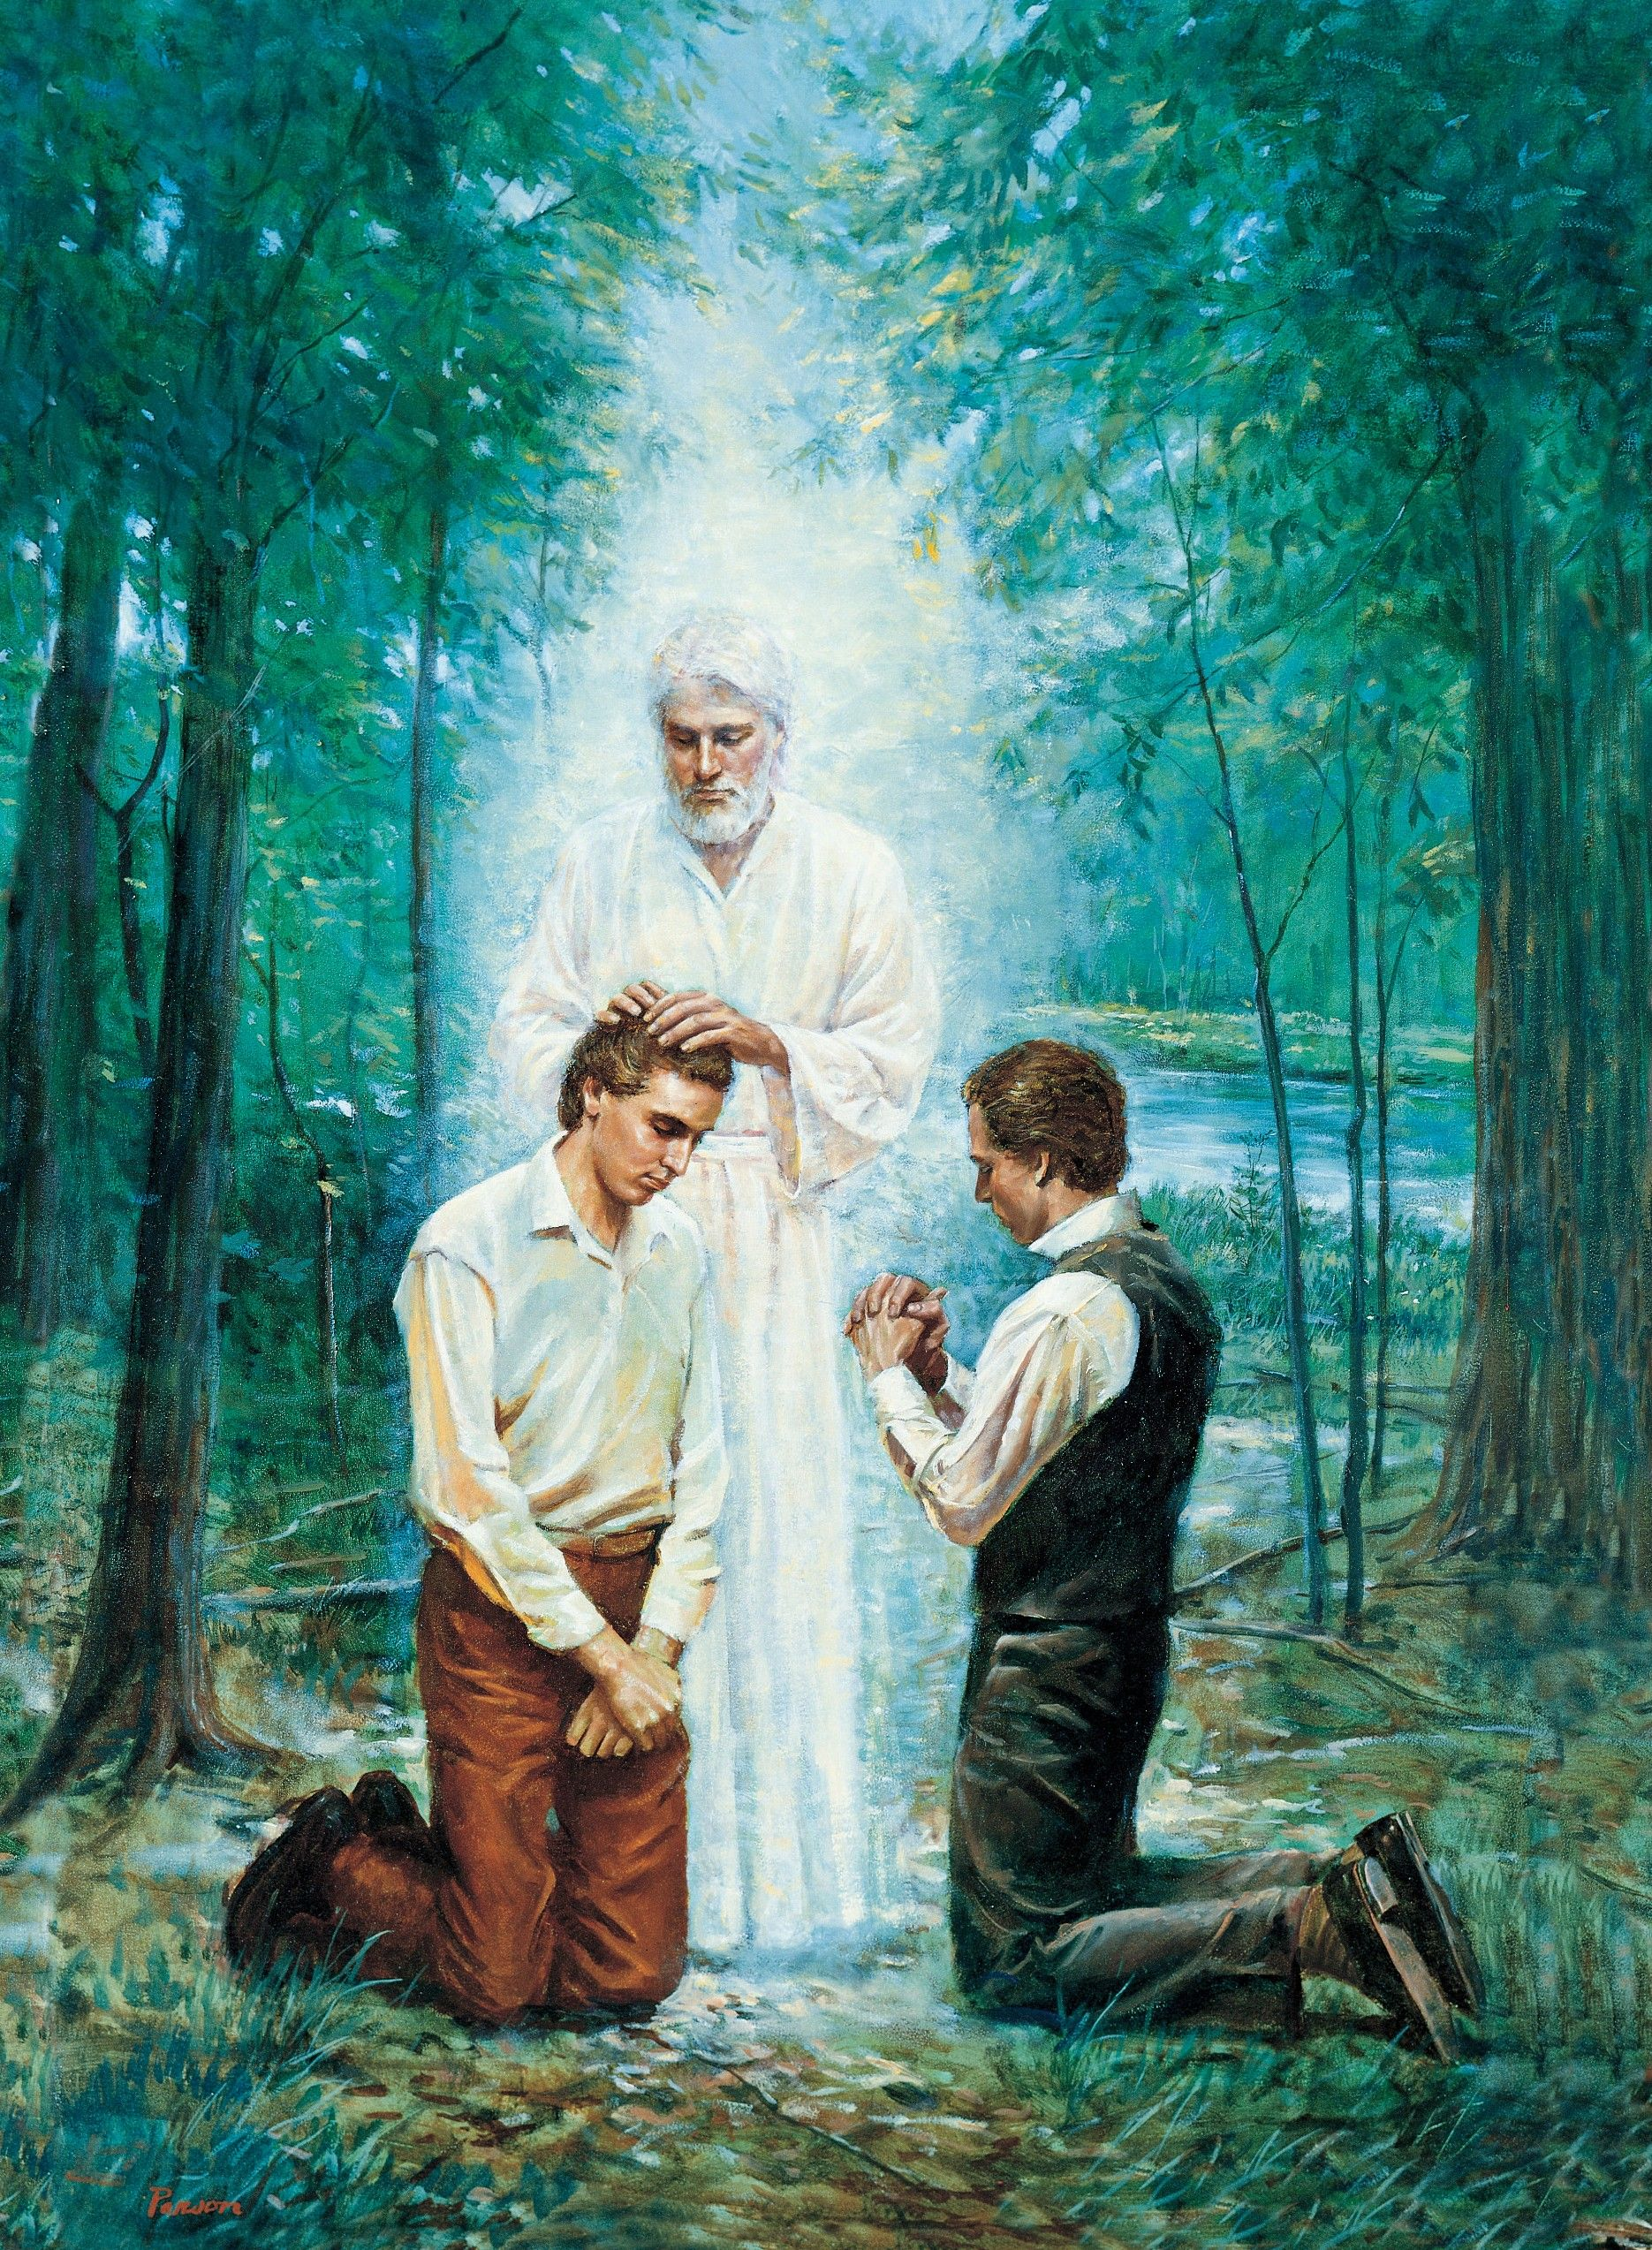 John the Baptist Conferring the Aaronic Priesthood (The Restoration of the Aaronic Priesthood), by Del Parson (62013); GAK 407; GAB 93; Primary manual 3-11; Primary manual 5-15; Primary manual 6-52; Doctrine and Covenants 13; Joseph Smith—History 1:68–73